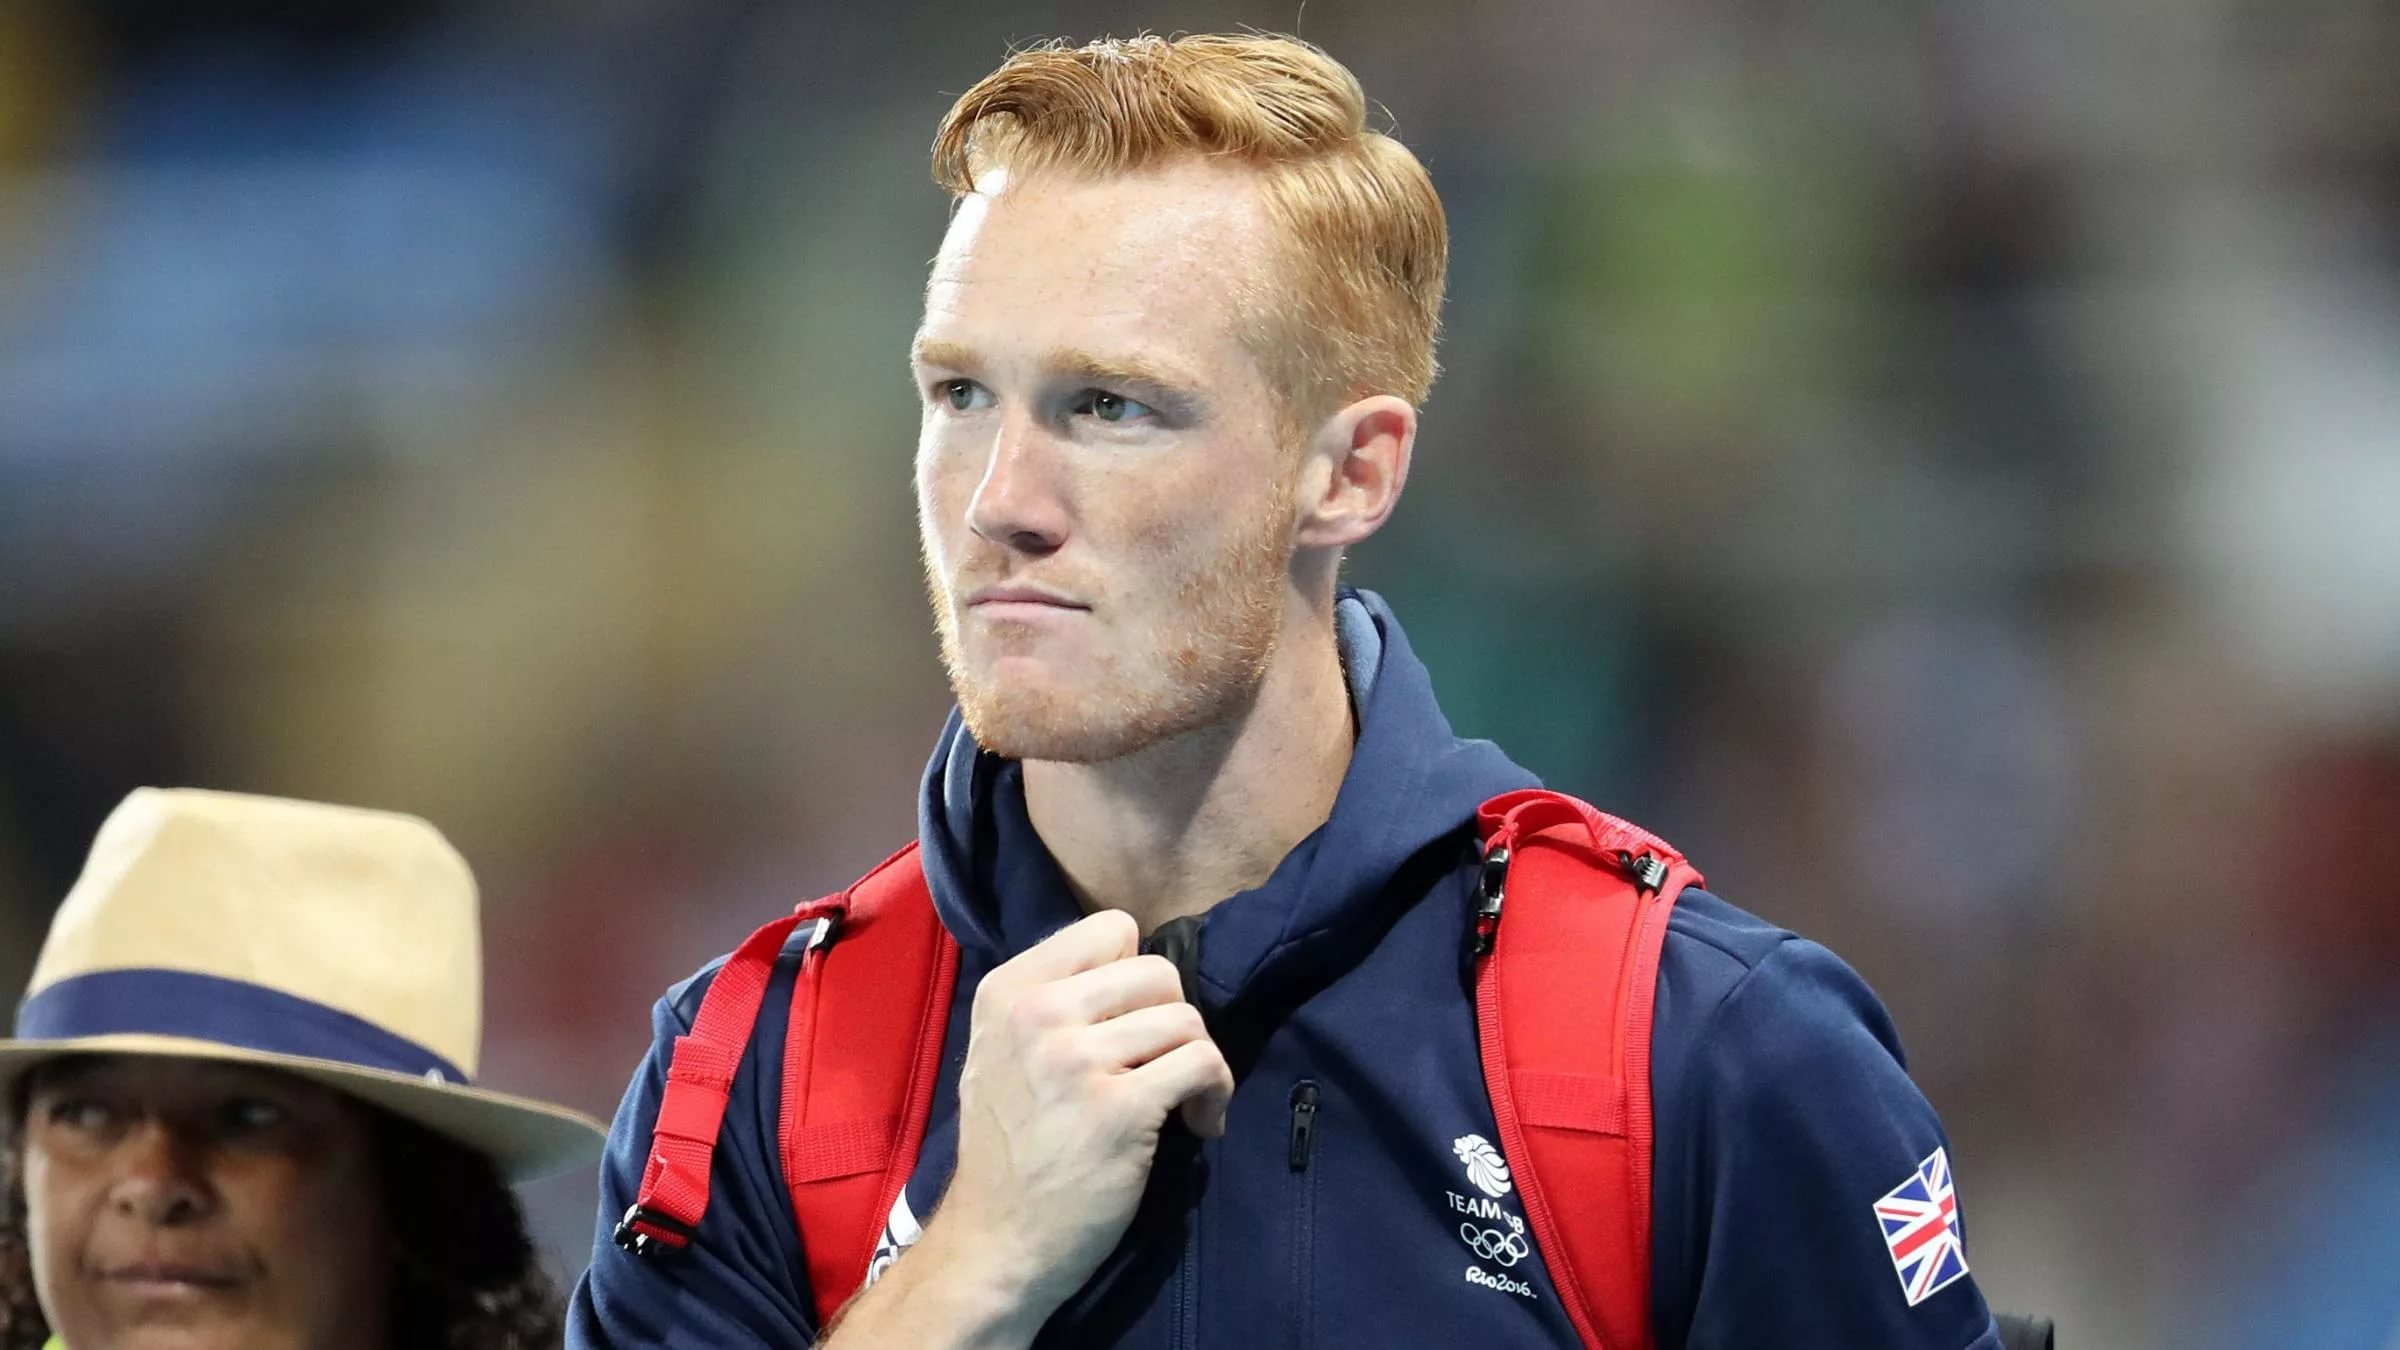 2400x1350 - Greg Rutherford Wallpapers 23